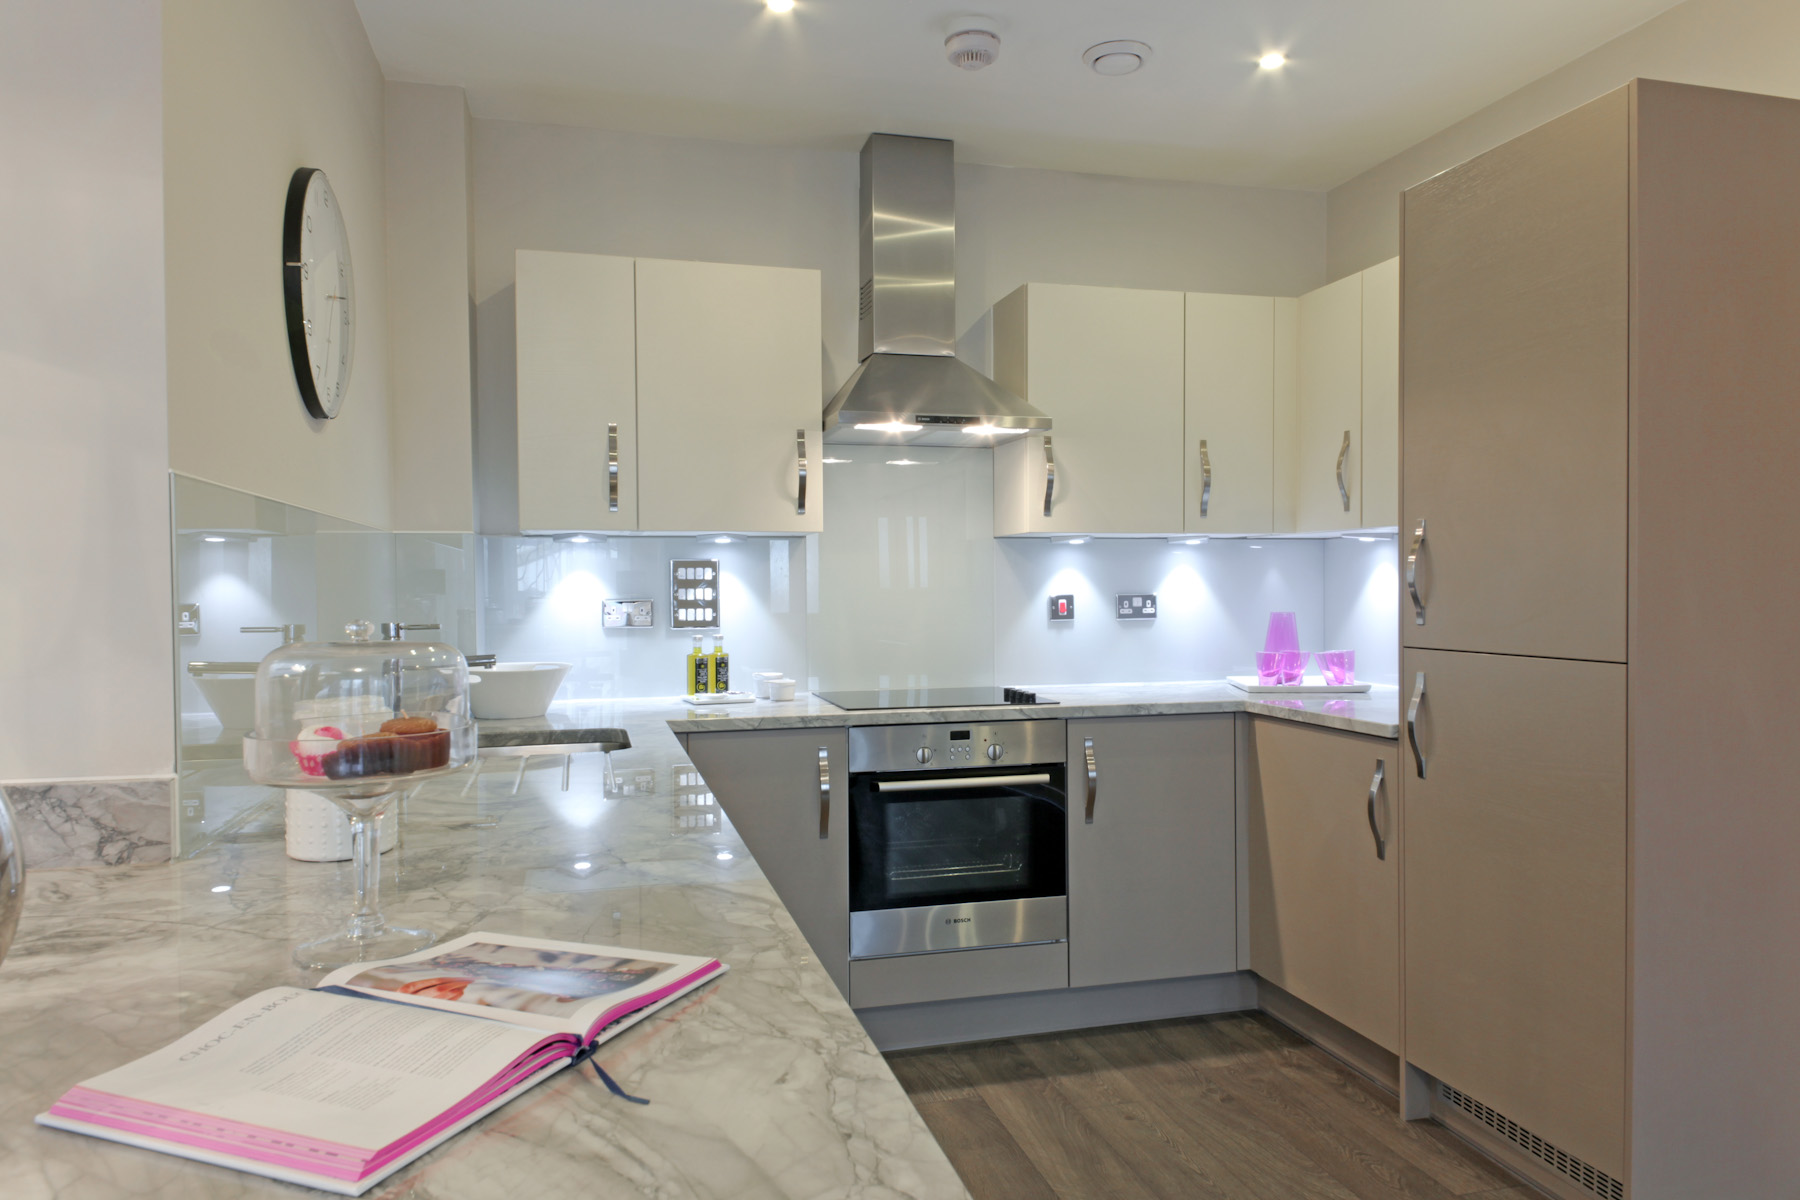 TW Exeter - Cranbrook - Farndale example kitchen